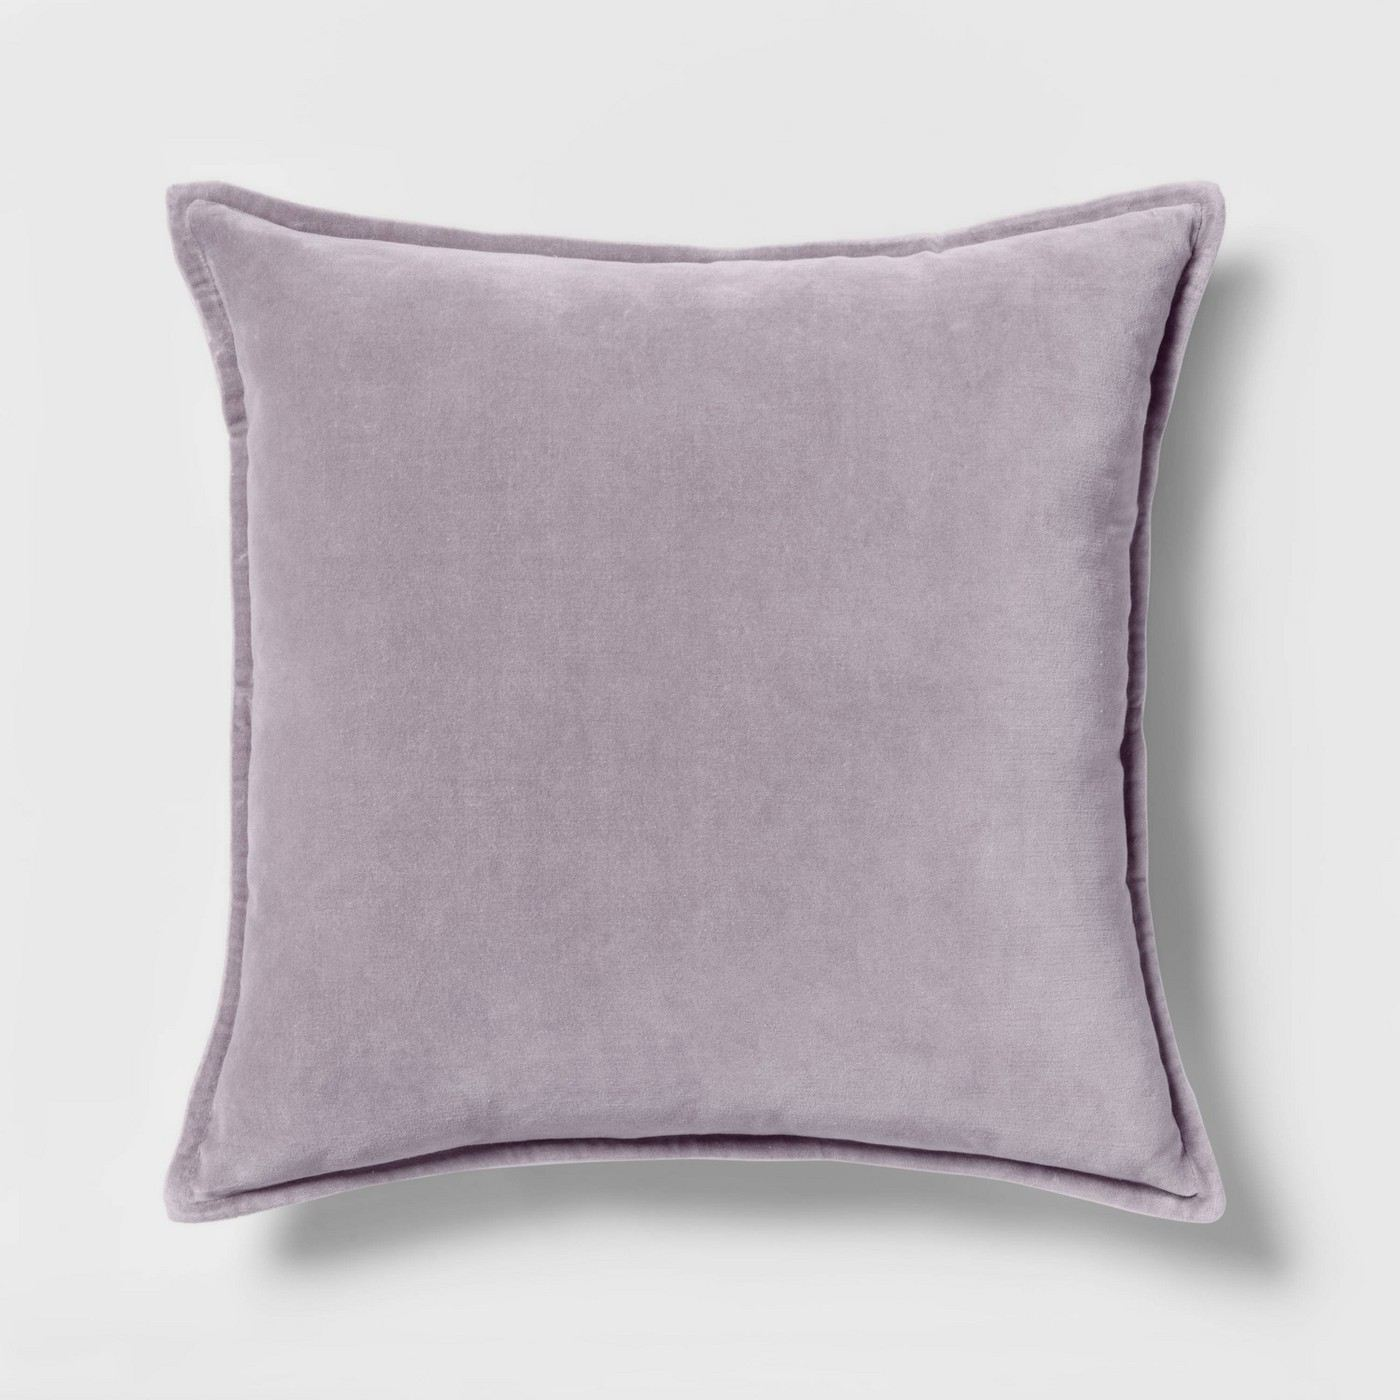 Solid Velvet with Zipper Closure Square Throw Pillow